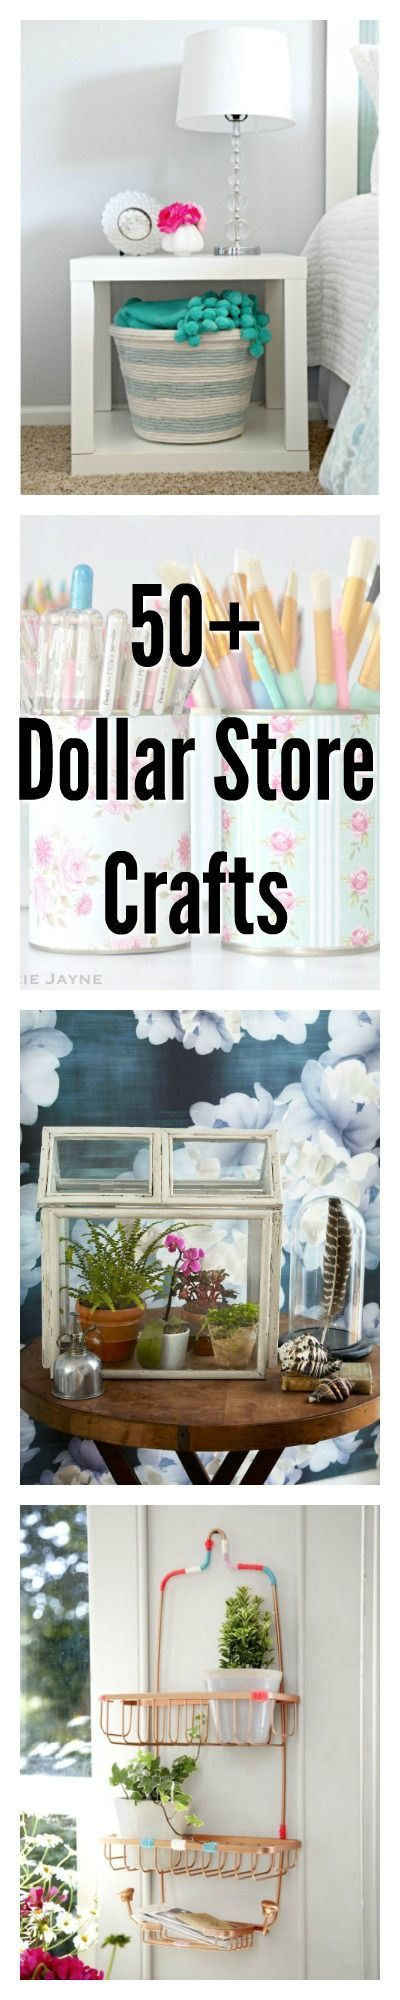 These 7 Dollar Store hacks from the experts are THE BEST! I'm so happy I found these AWESOME tips! Now my home will looks so less cluttered! I'm definitely pinning for later!